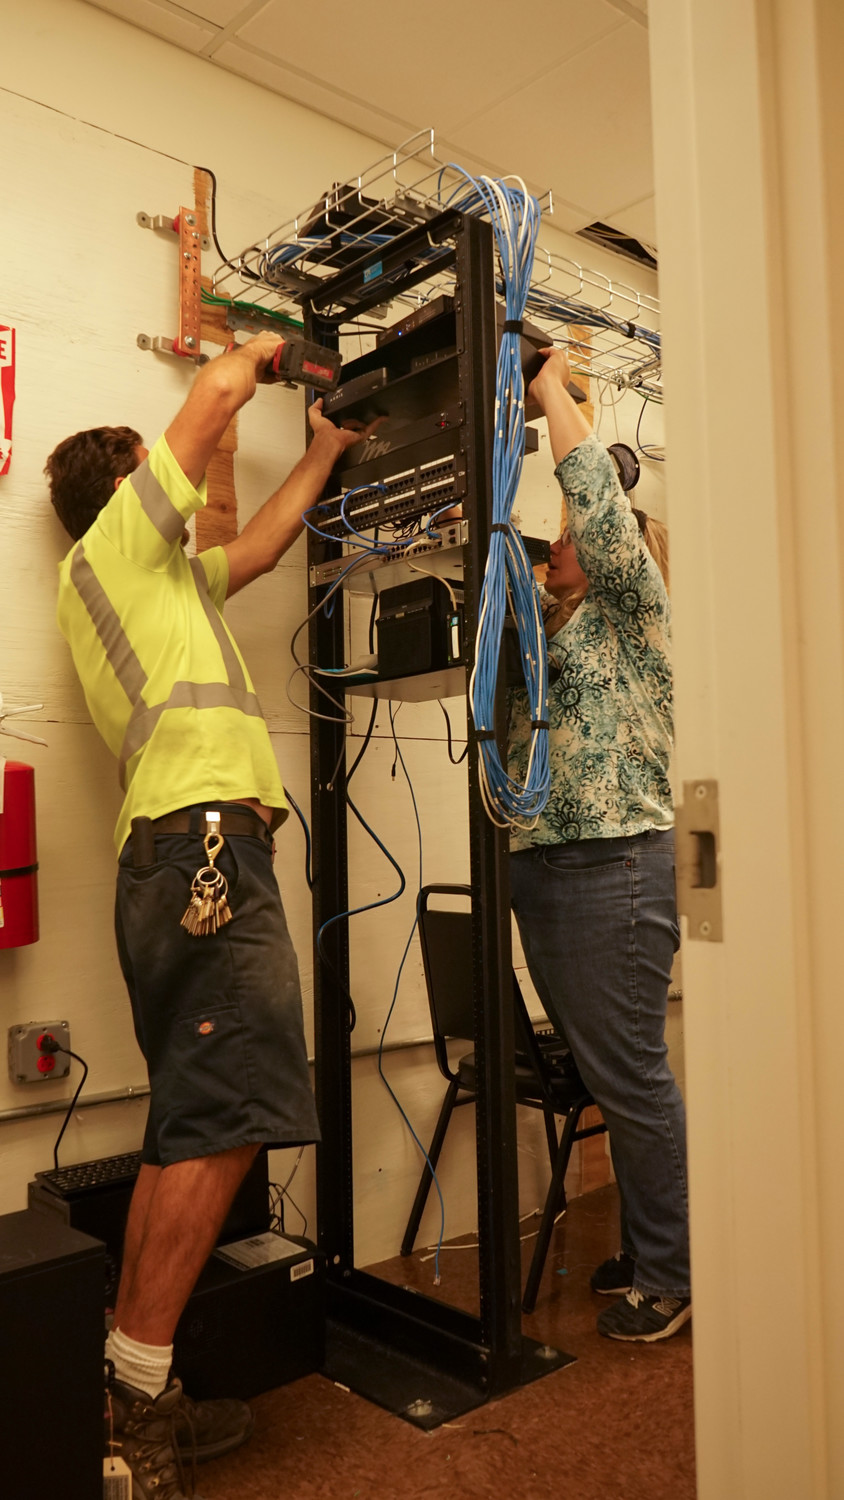 Village DPW worker Bill Boyce, left, helped Susan Hebel as they installed IT equipment on the village's server racks.